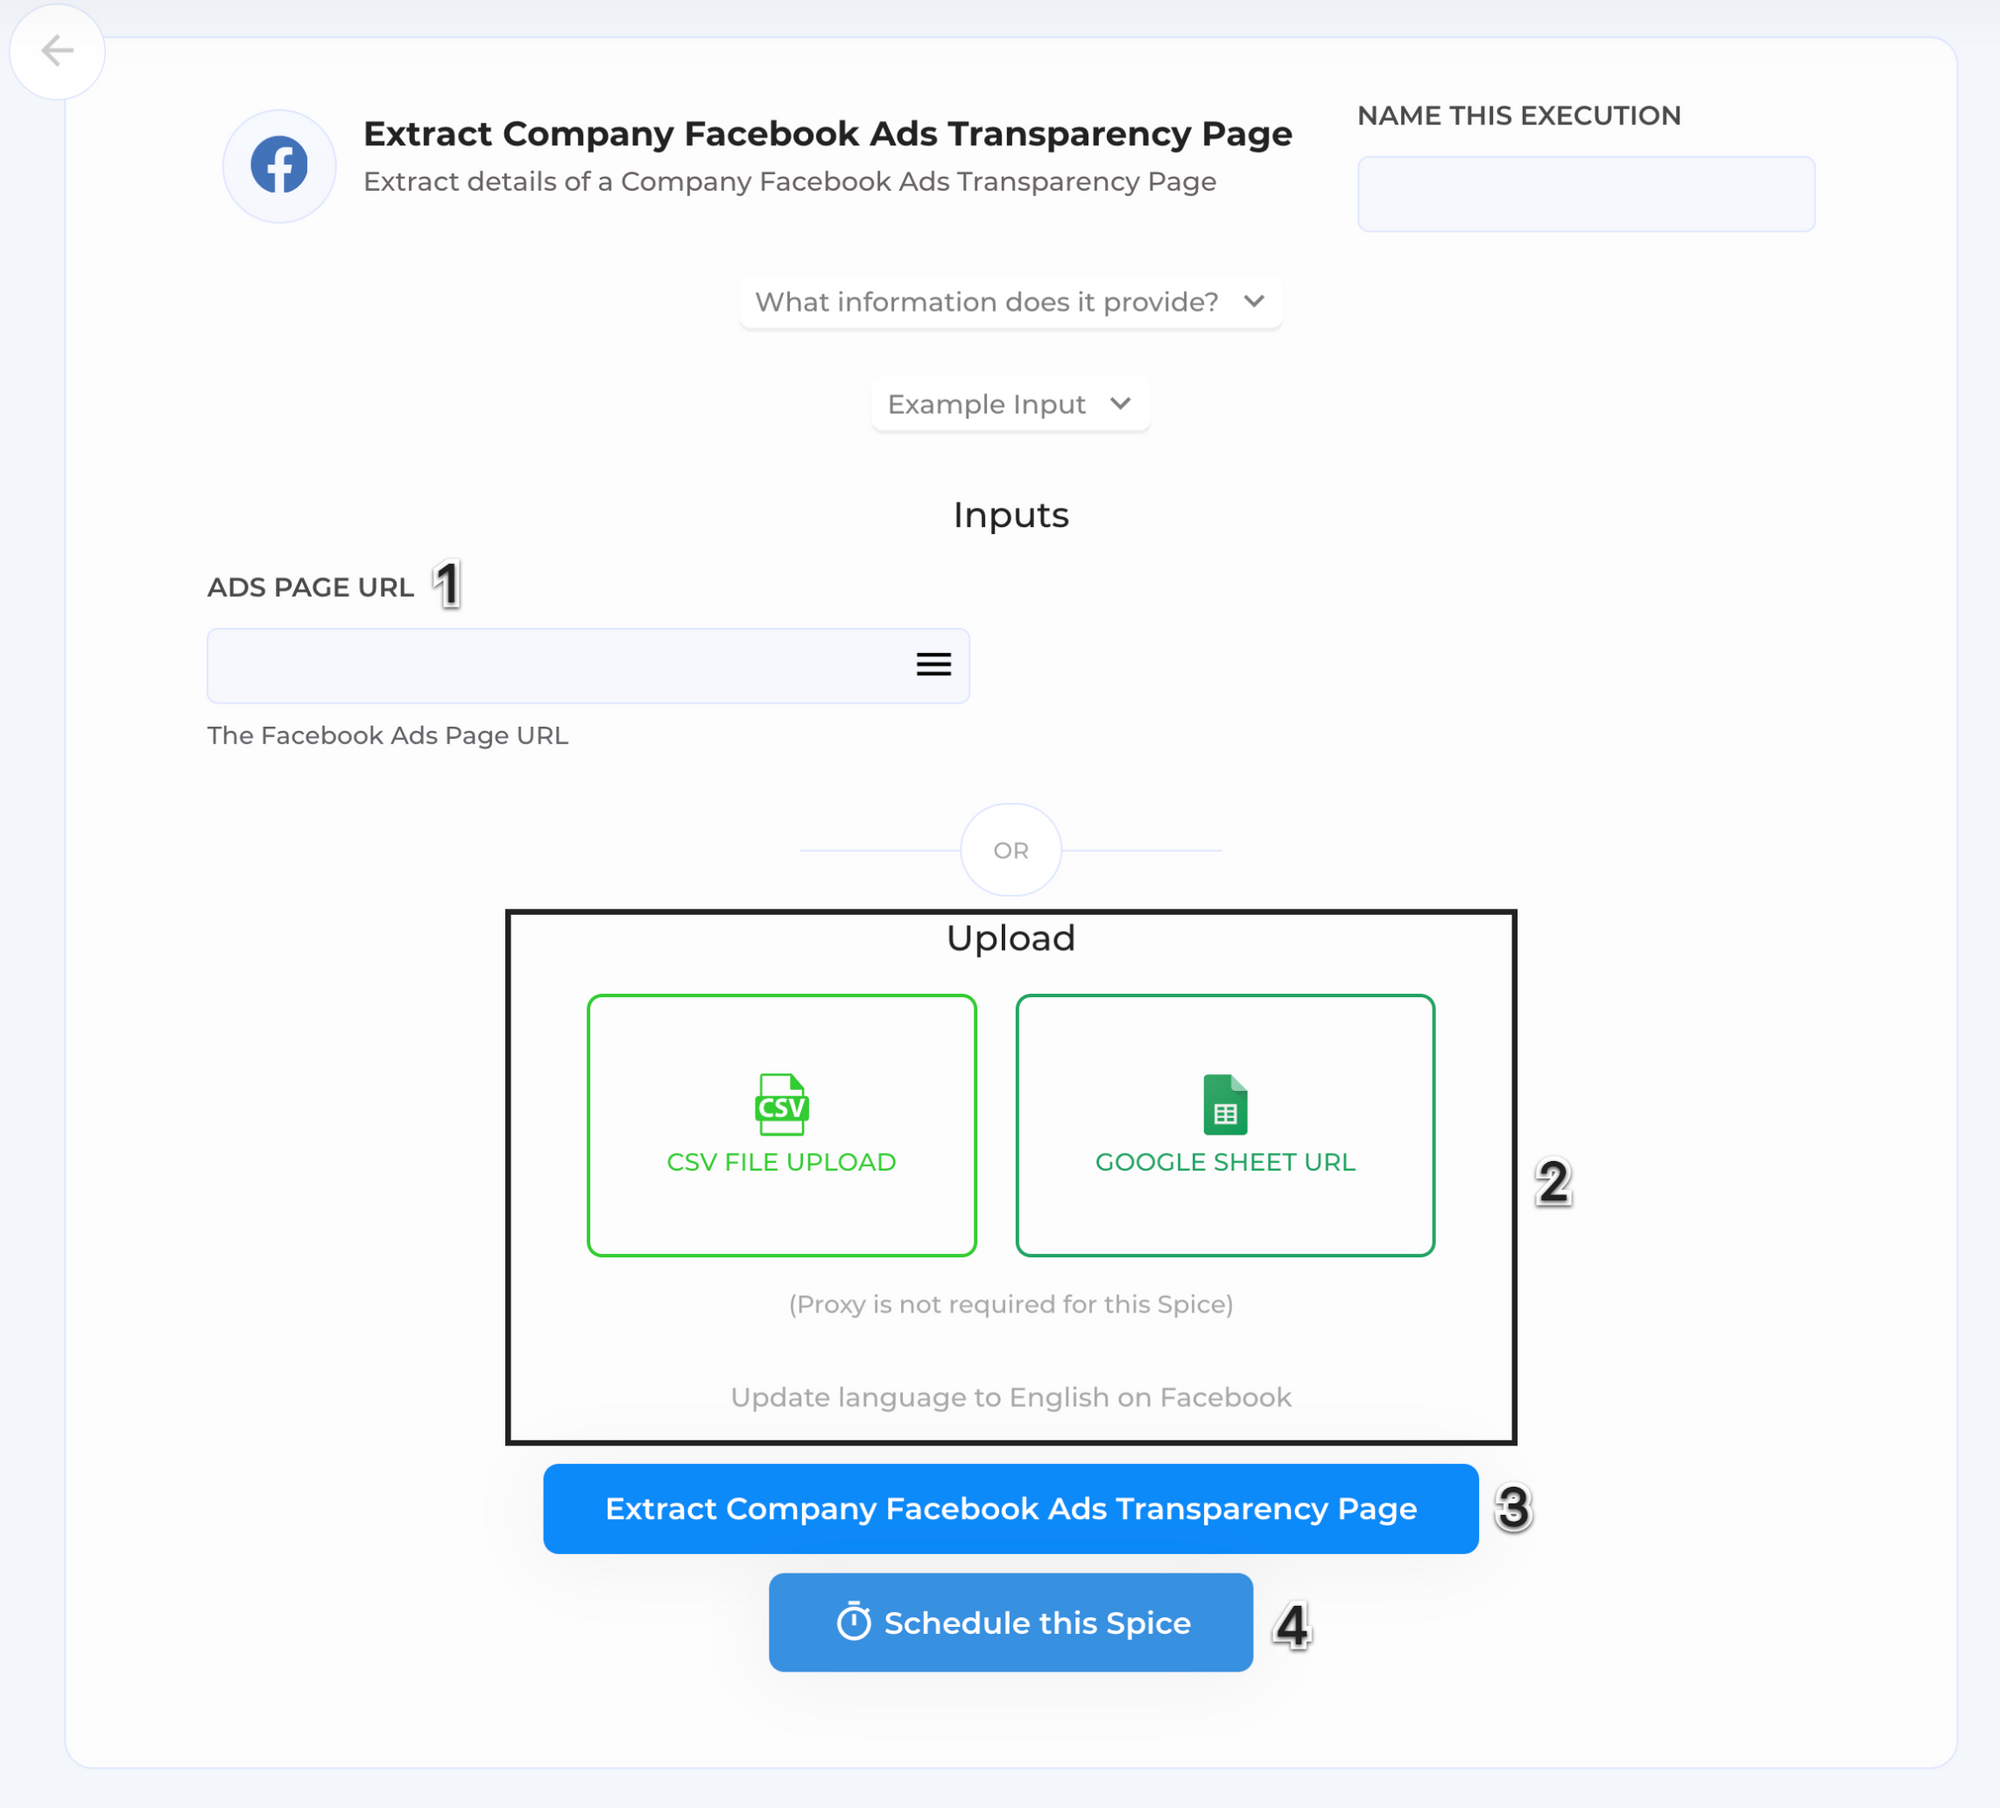 Extract-Company-Facebook-Ads-Transparency-Page-Automation-page